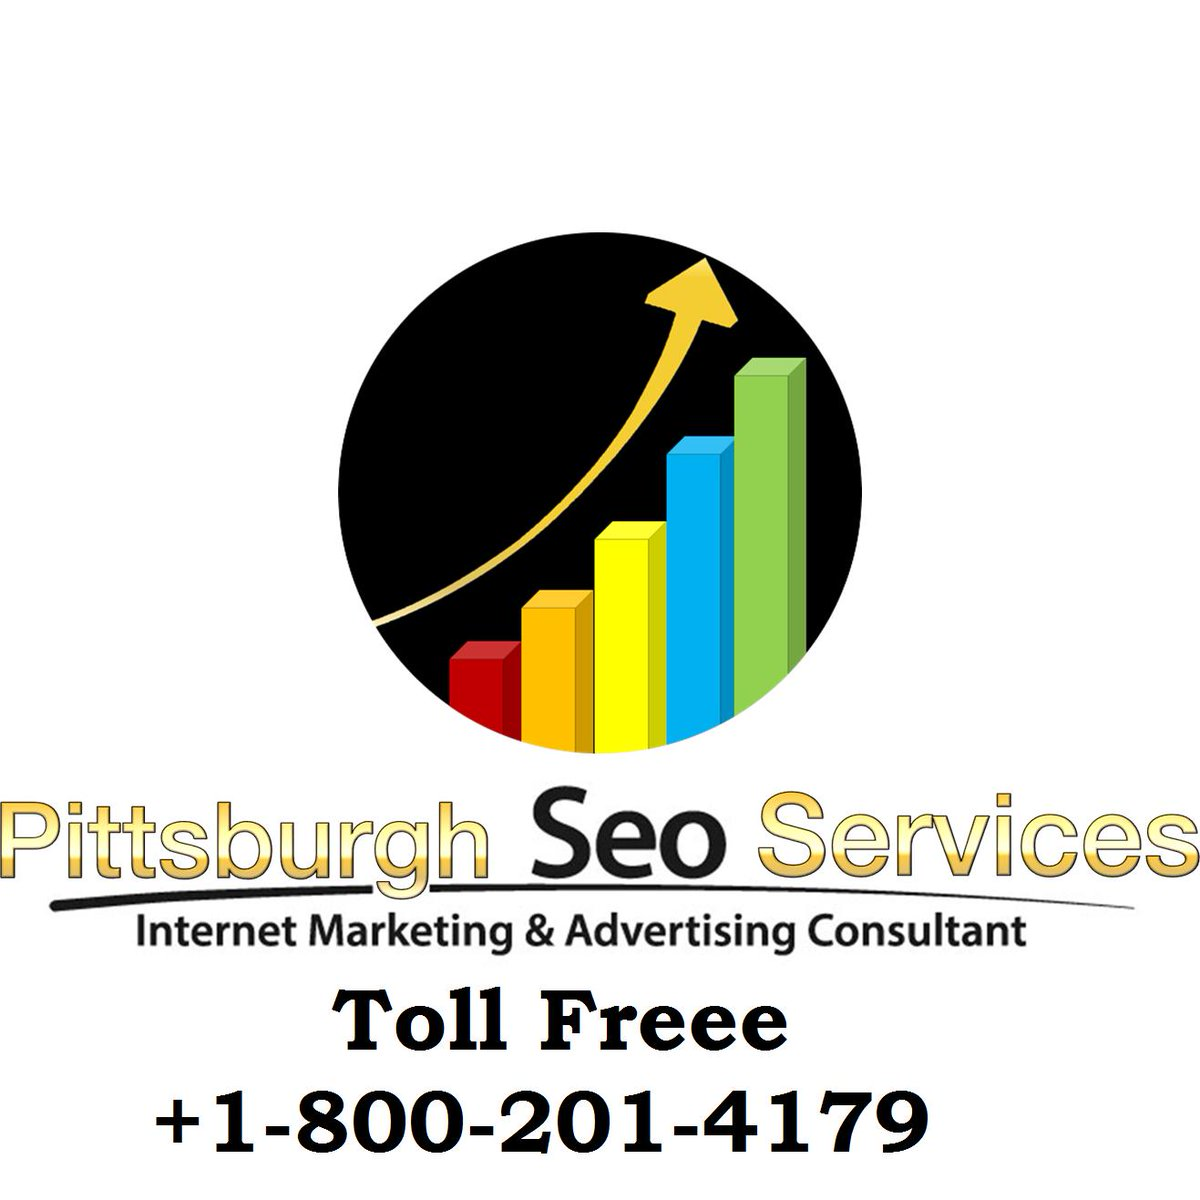 Pittsburgh SEO Agency bit.ly/2M6R6Ch The picked cost effective #PittsburghSEOAgency ought to can be showing and likewise exhibiting the work based on the requisite presumptions based upon your very own inputs #BestSEOService #SEOService #SEOCompany #Tral #FridayFeeling